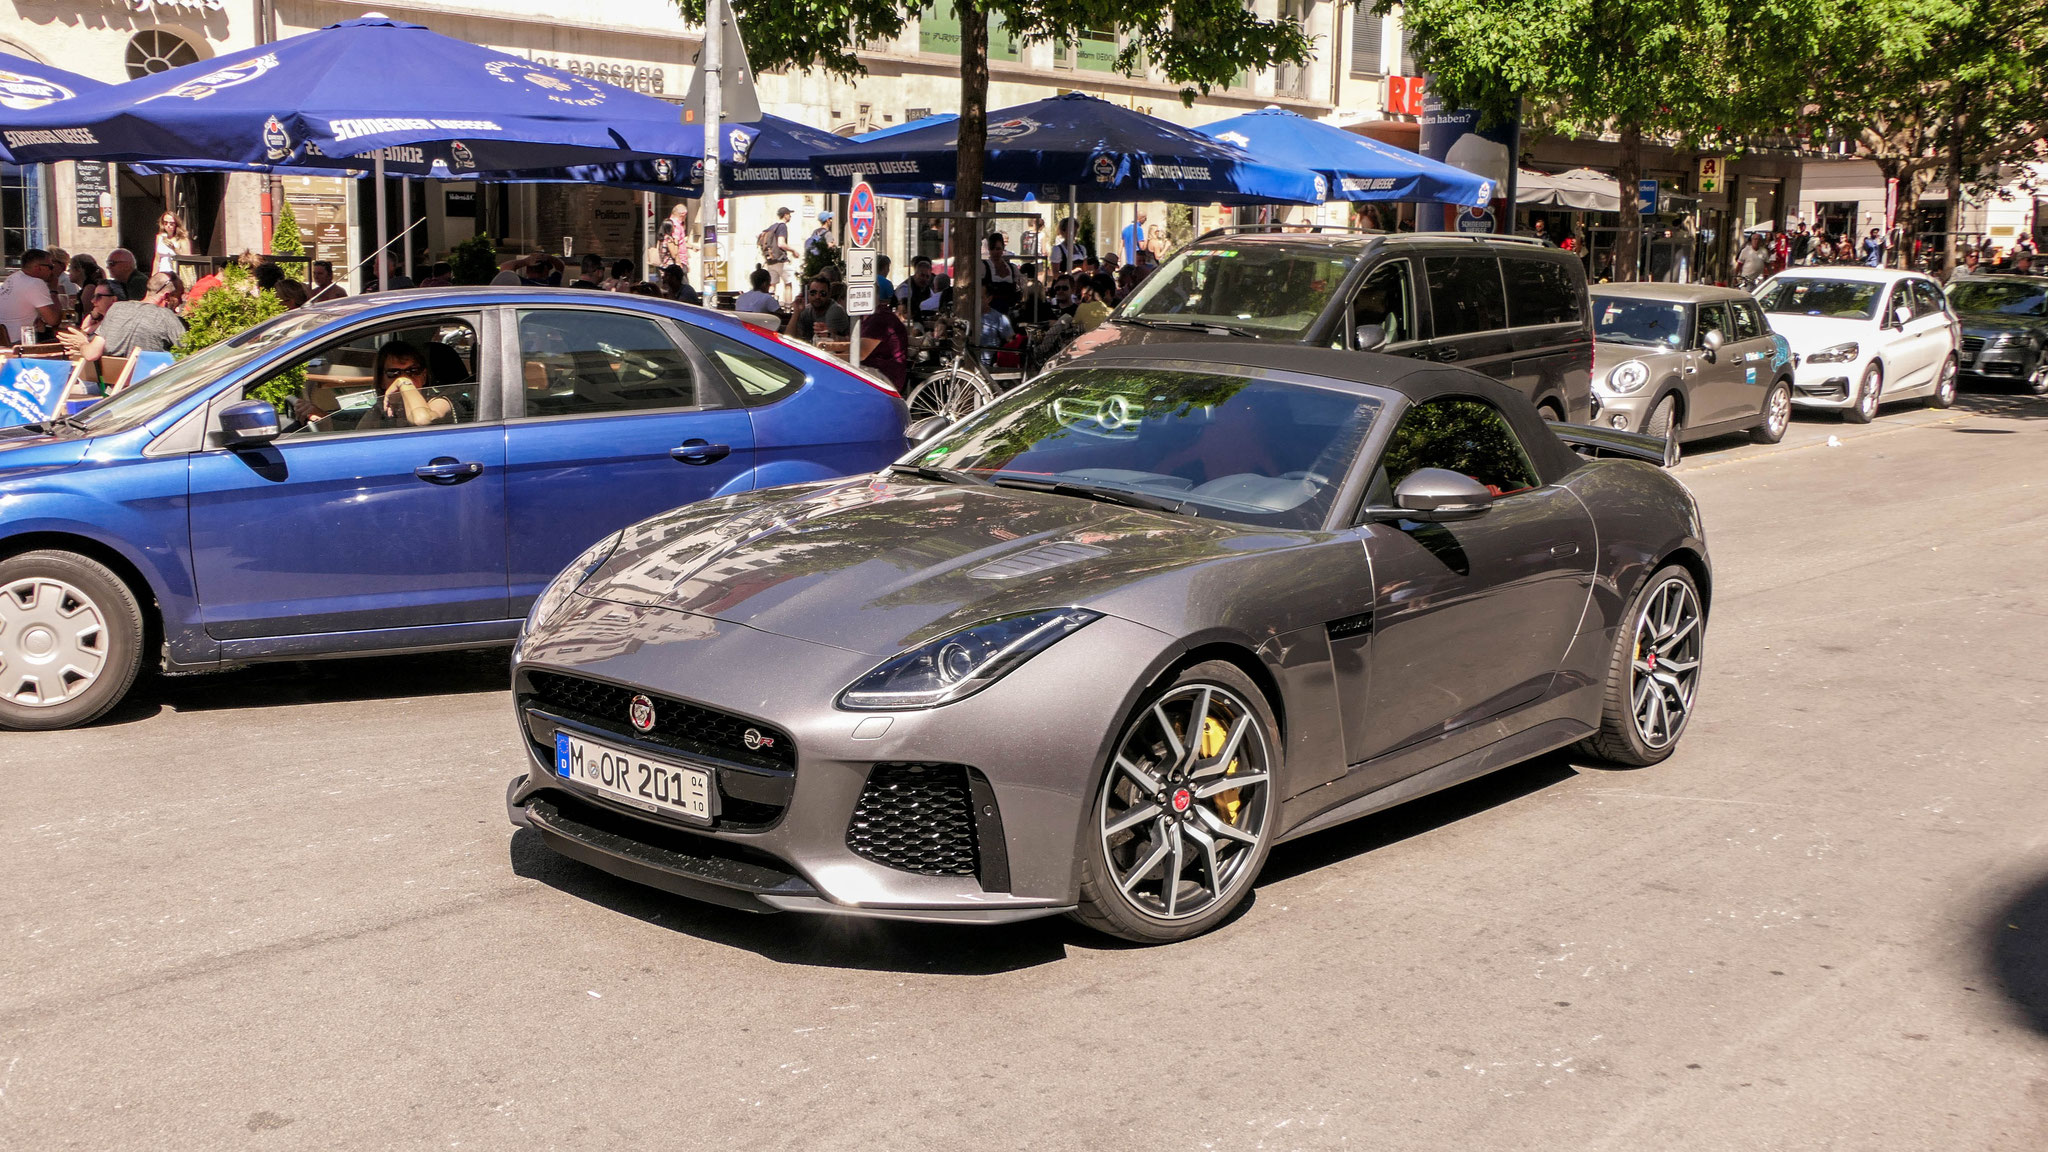 Jaguar F-Type SVR Cabrio - M-OR-201